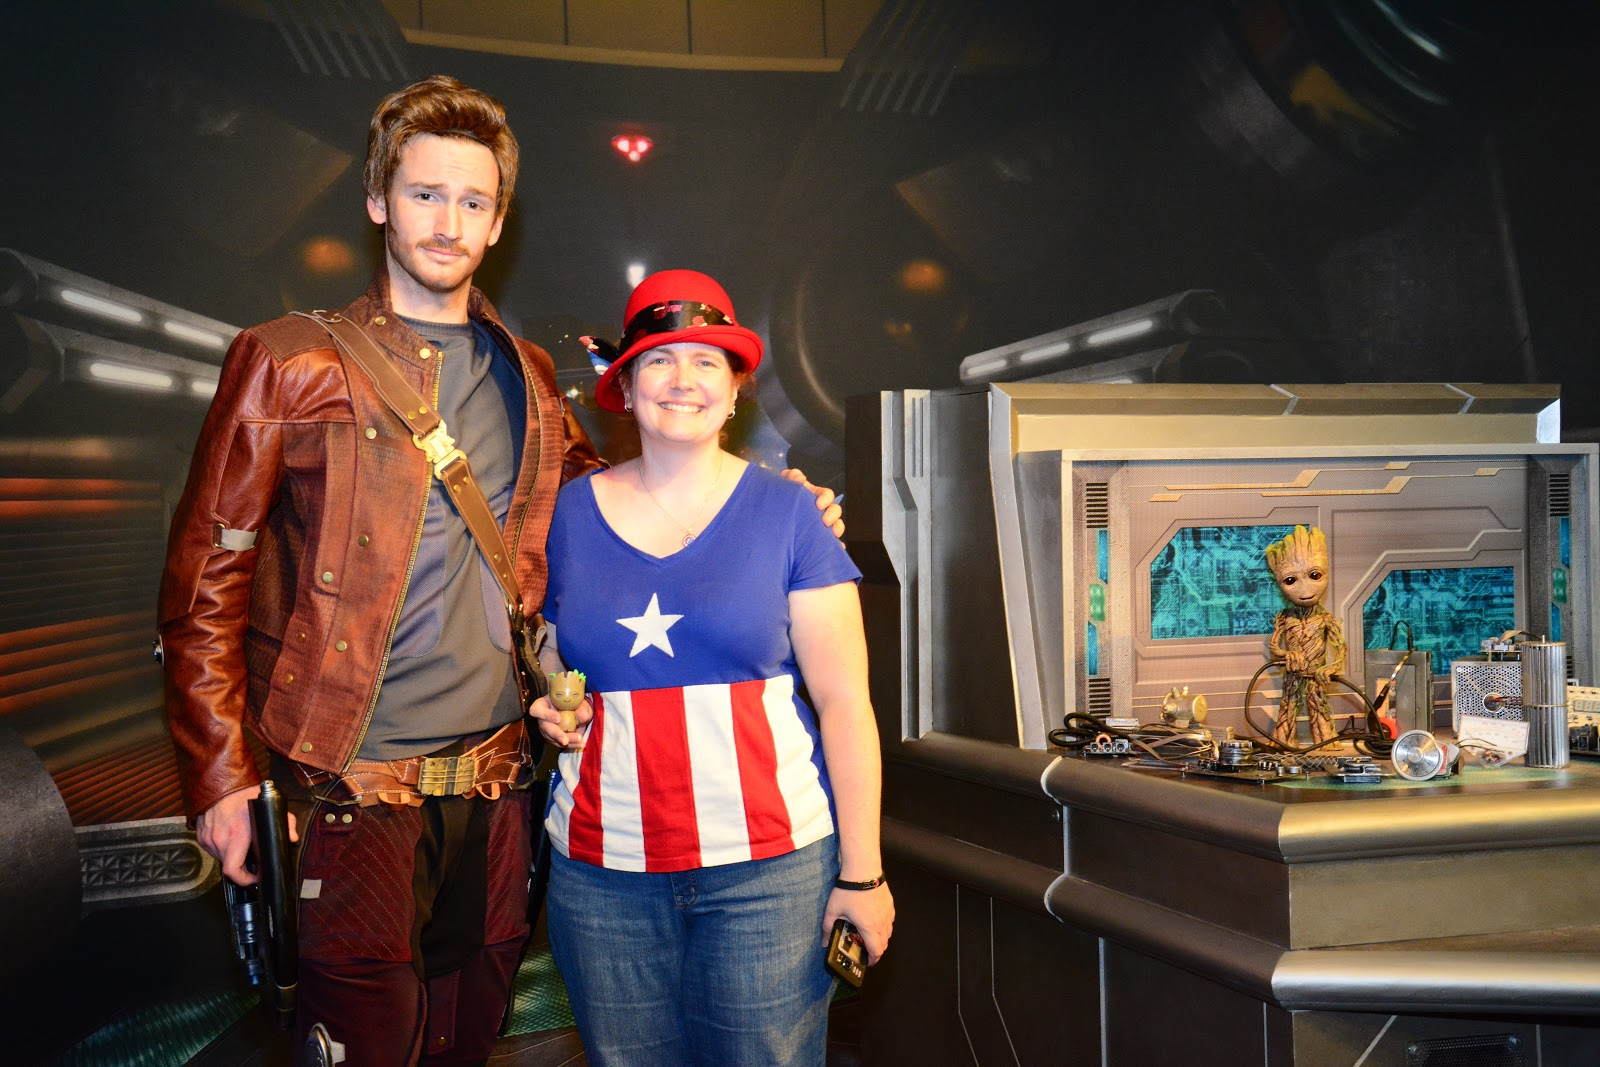 Disney at heart star lord and baby groot meet and greet did you know that you can meet star lord and baby groot at disneys hollywood studios they are currently meeting guests in a guardians of the galaxy themed kristyandbryce Choice Image